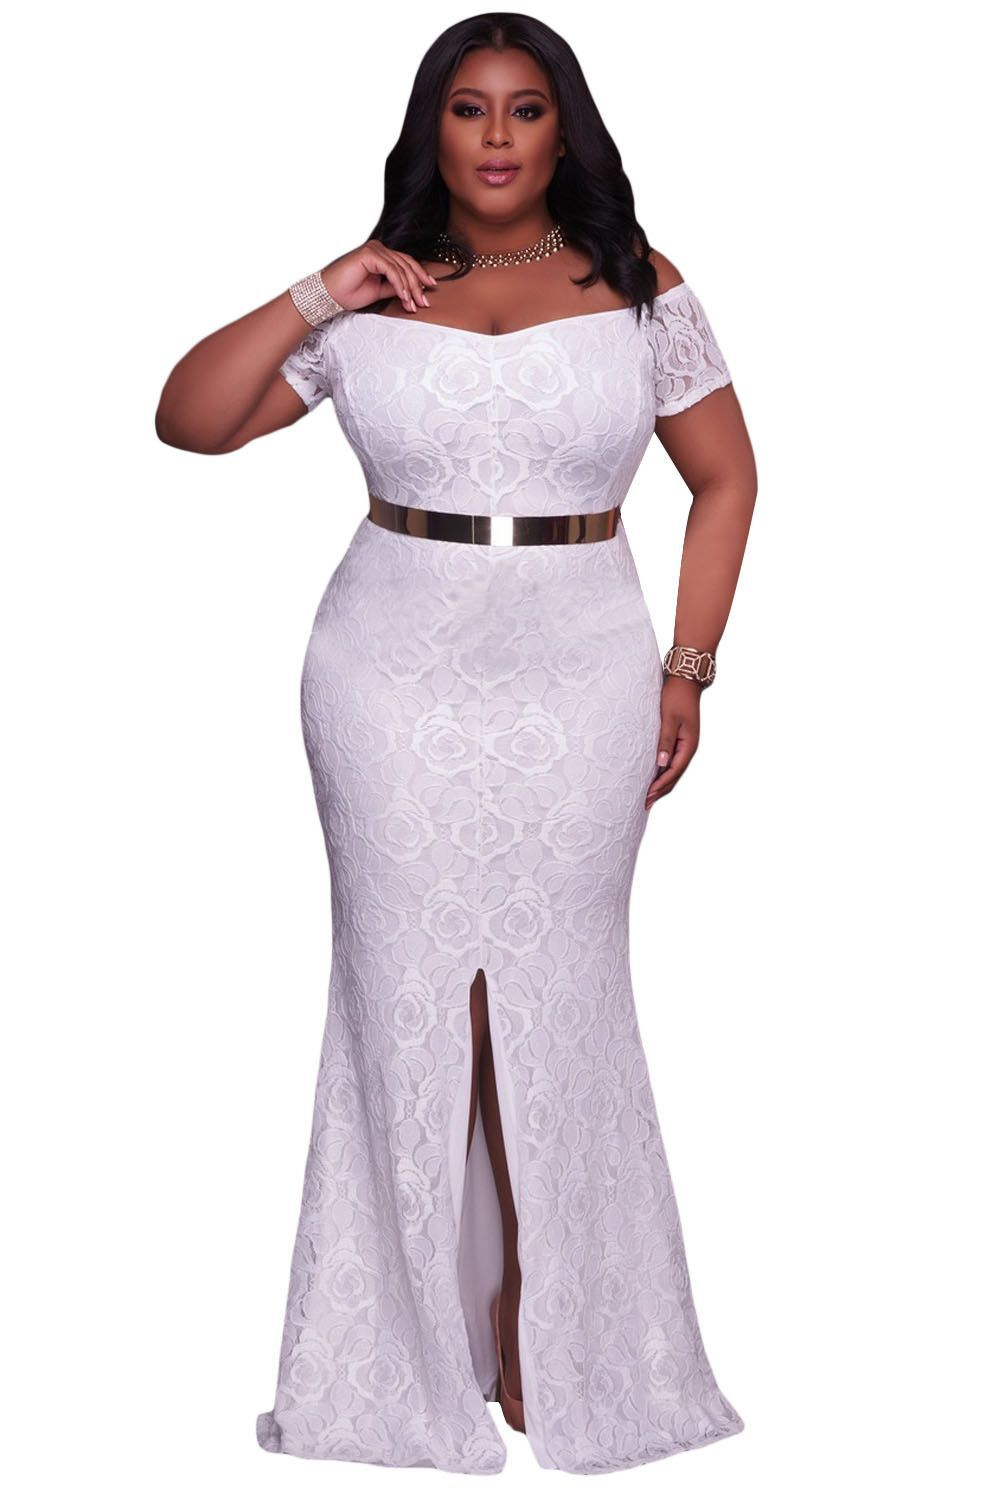 White plus size off shoulder lace gown bodycondresses fashionista